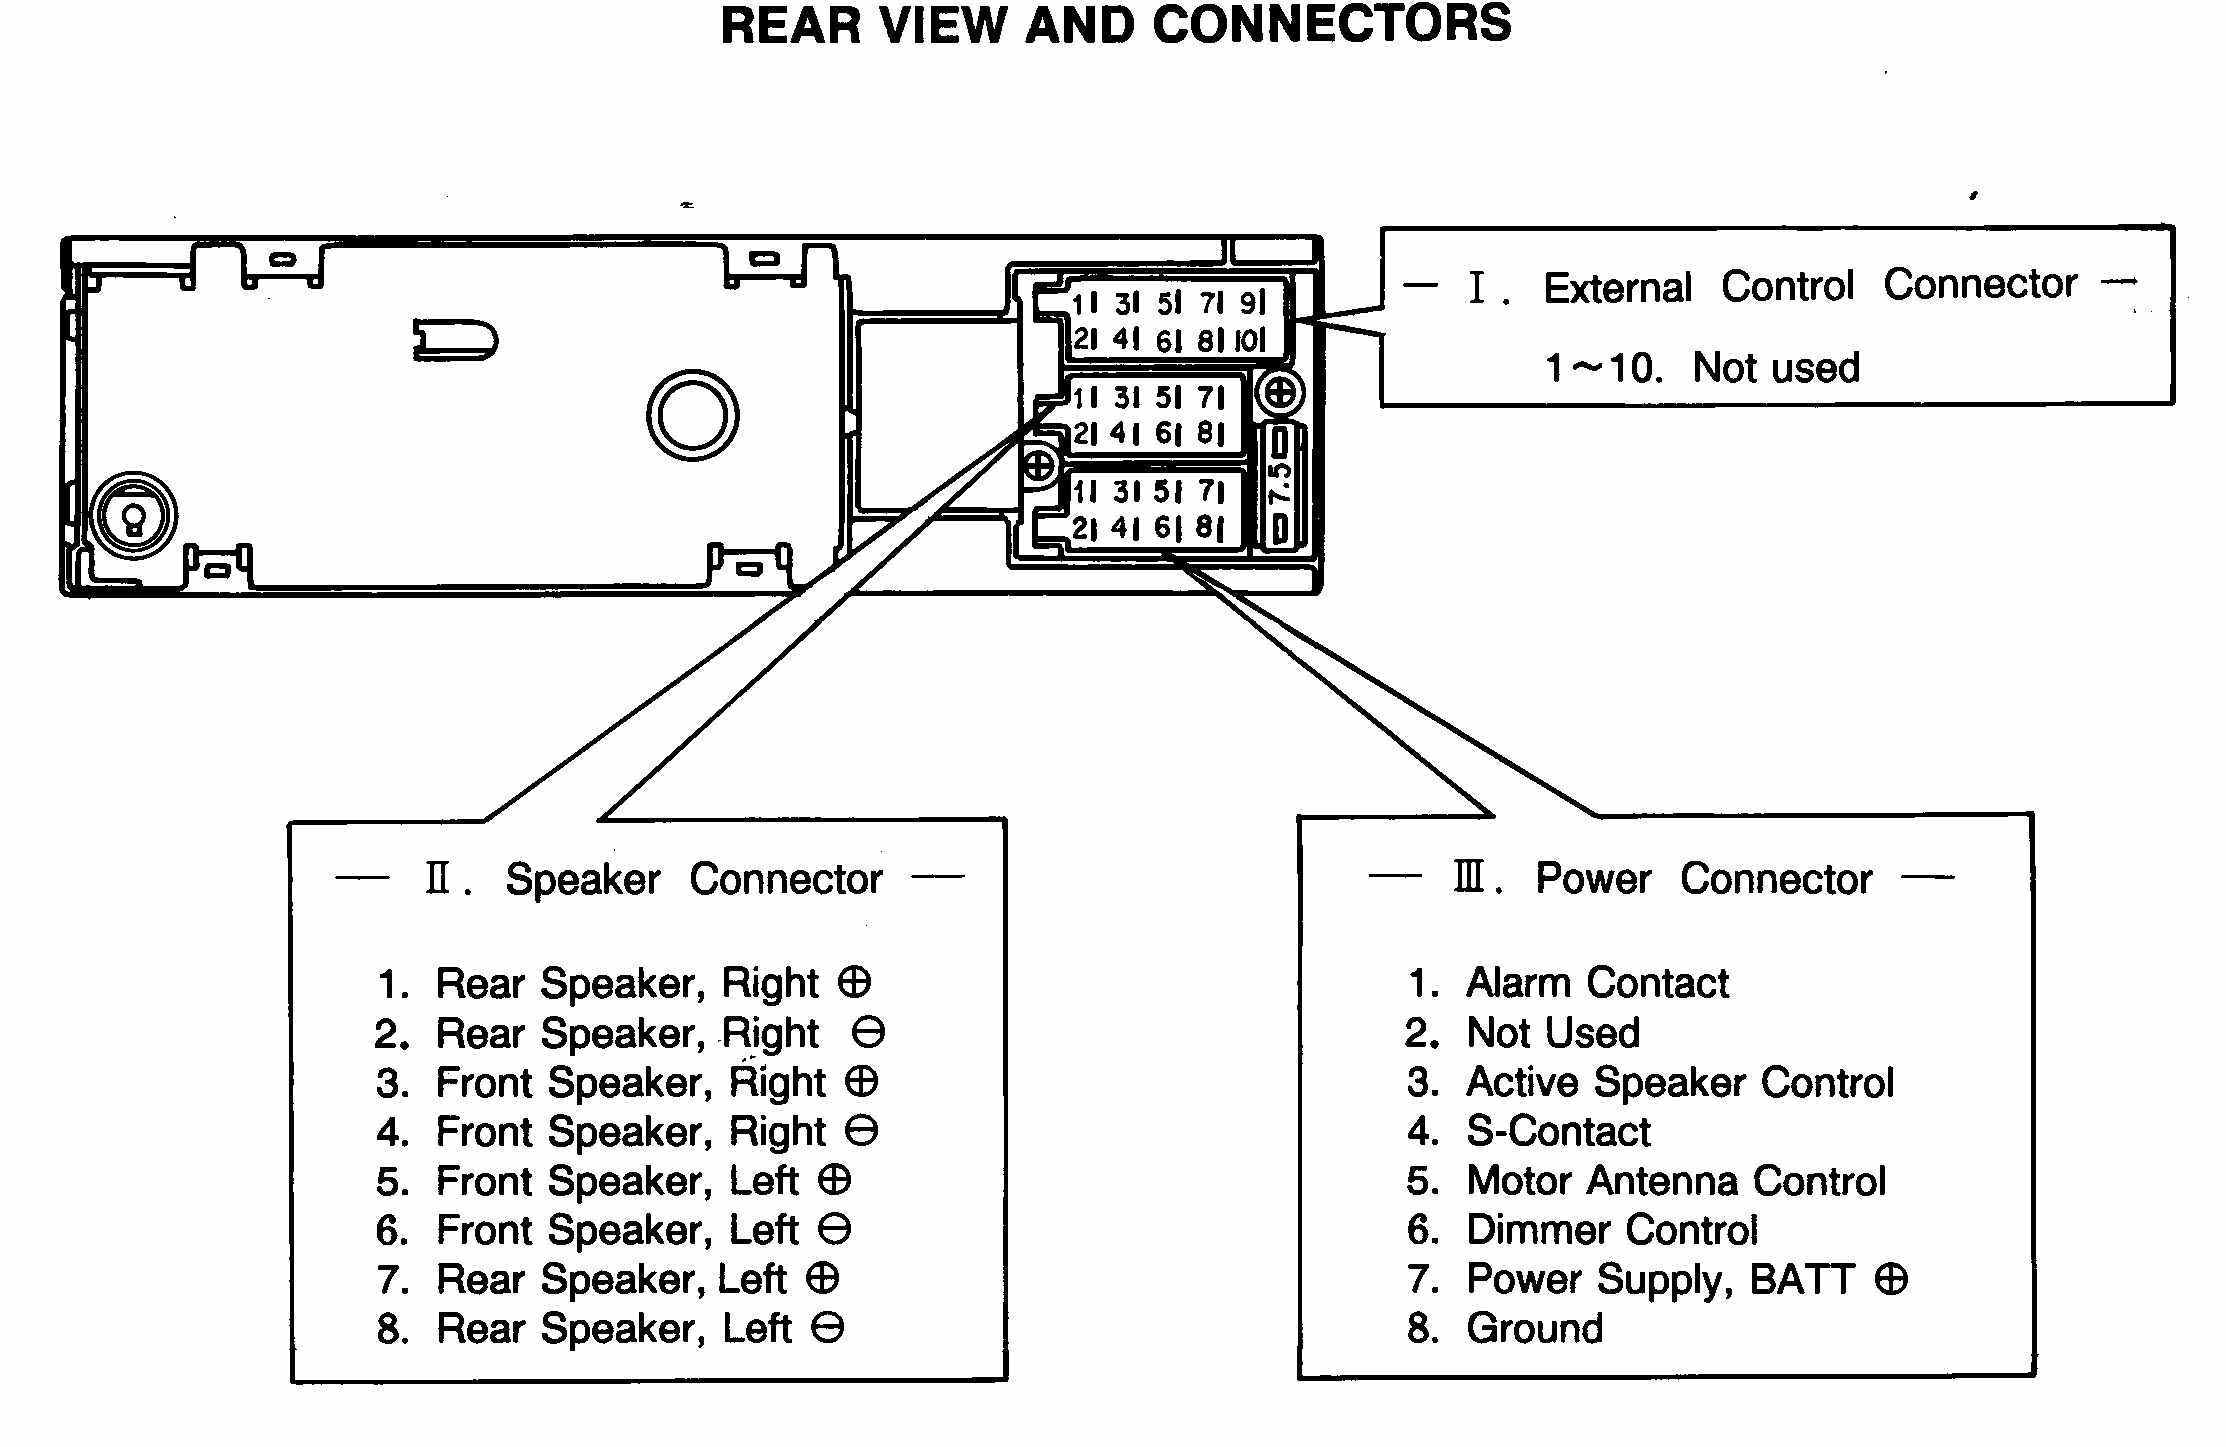 Sony Car Stereo Wiring Diagram - Data Wiring Diagram Today - Sony Car Stereo Wiring Diagram